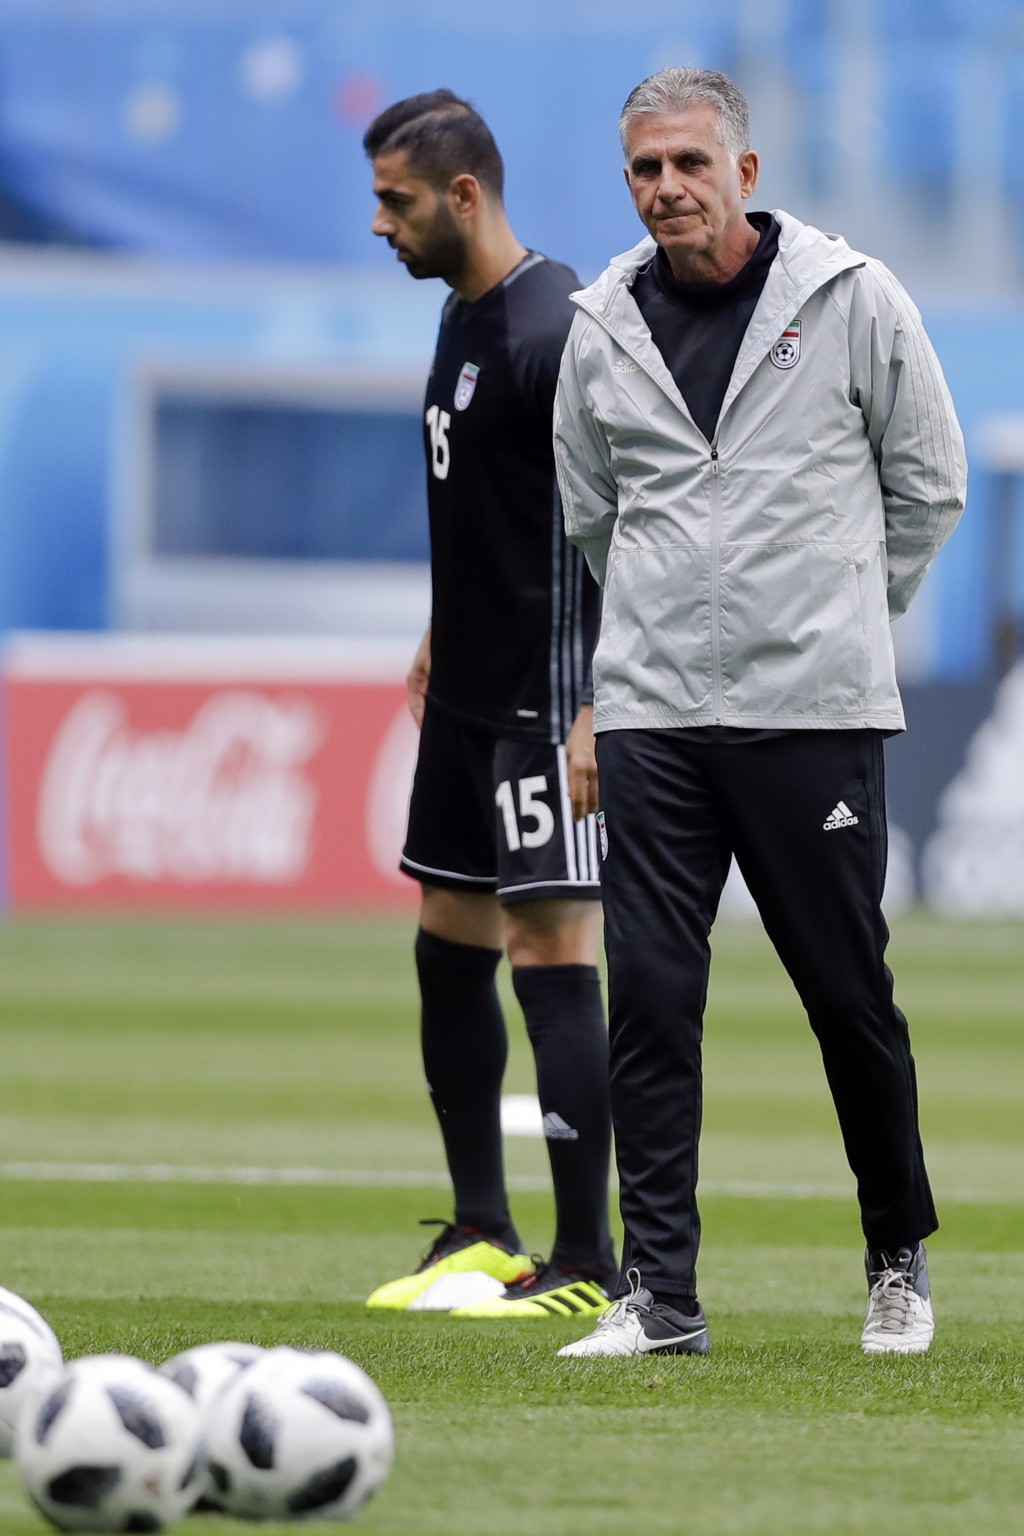 Iran head coach Carlos Queiroz walks on the pitch during the official training of Iran on the eve of the group B match between Morocco and Iran at the